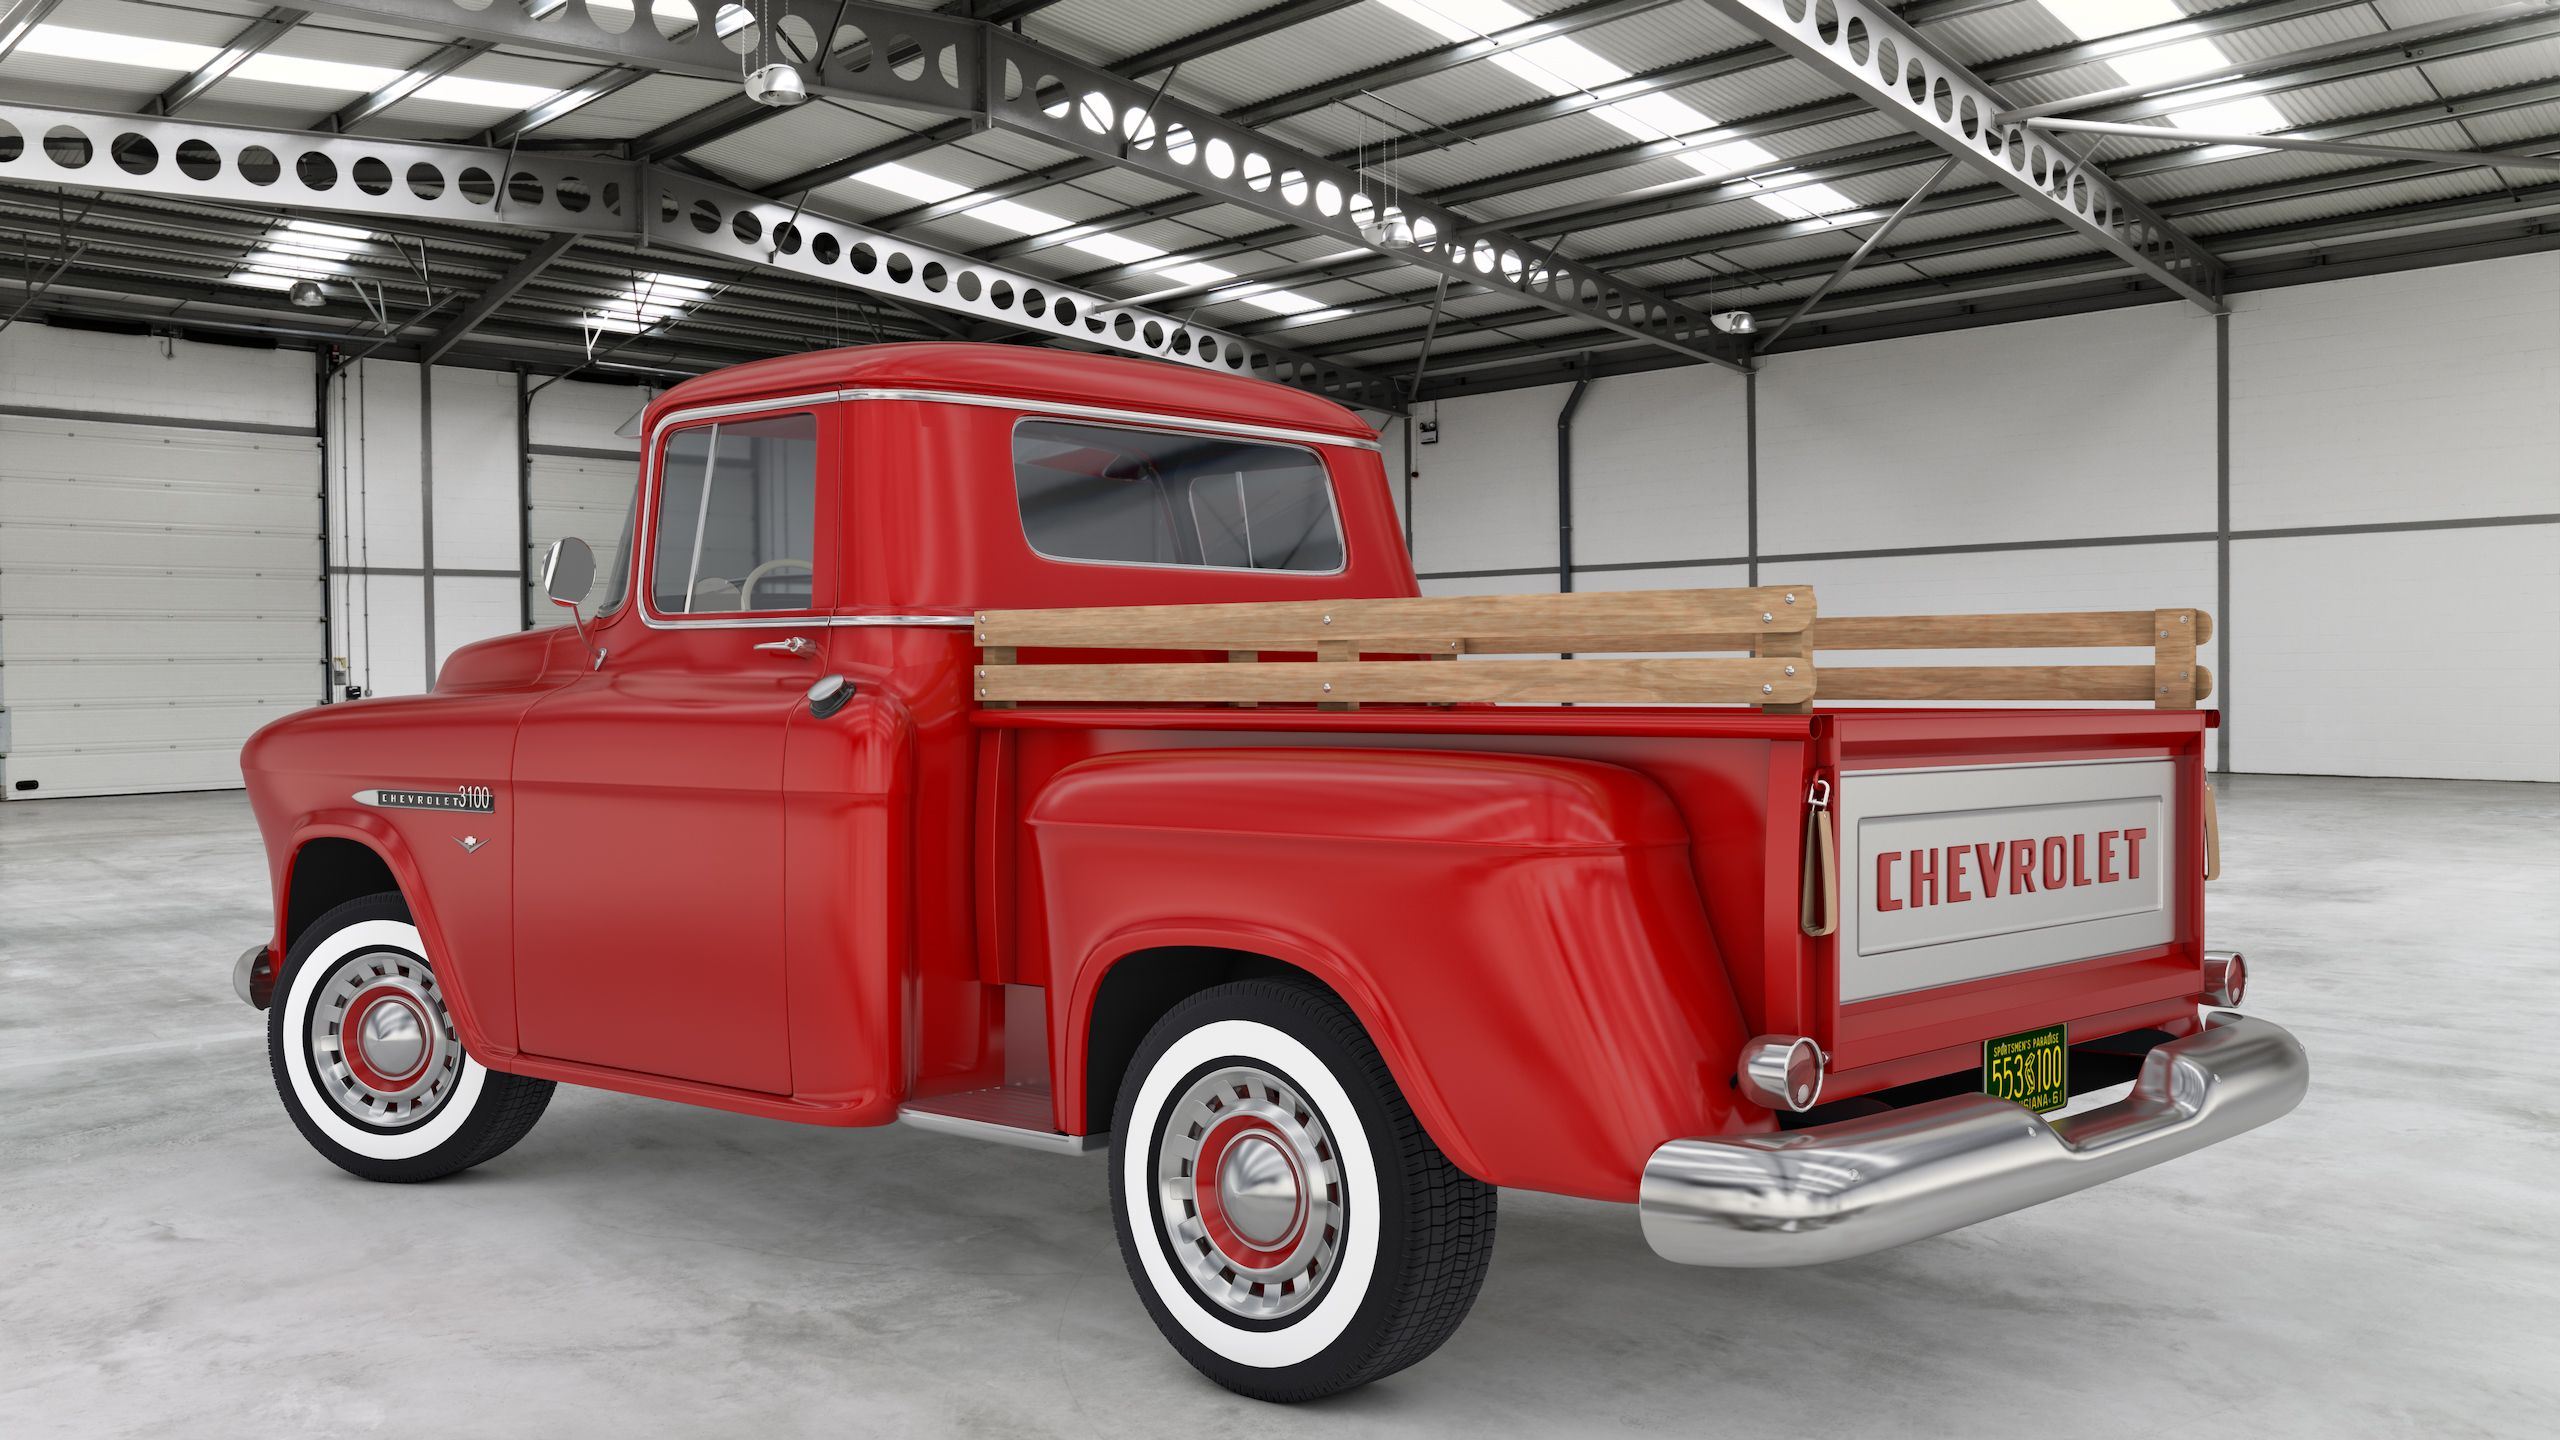 1955 chevy truck 1955 chevrolet 3100 pickup by samcurry